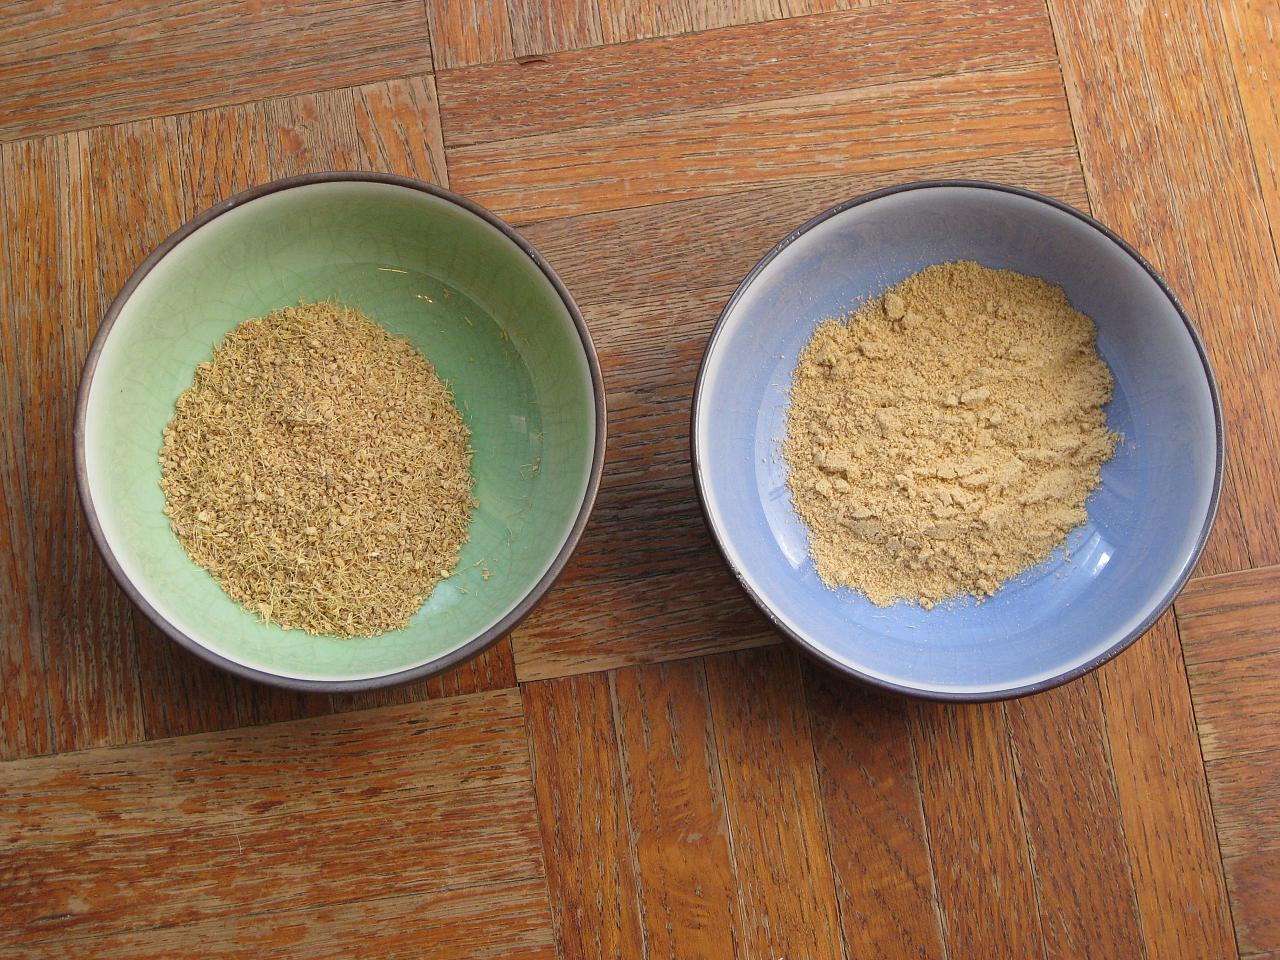 pounded ginger in bowls